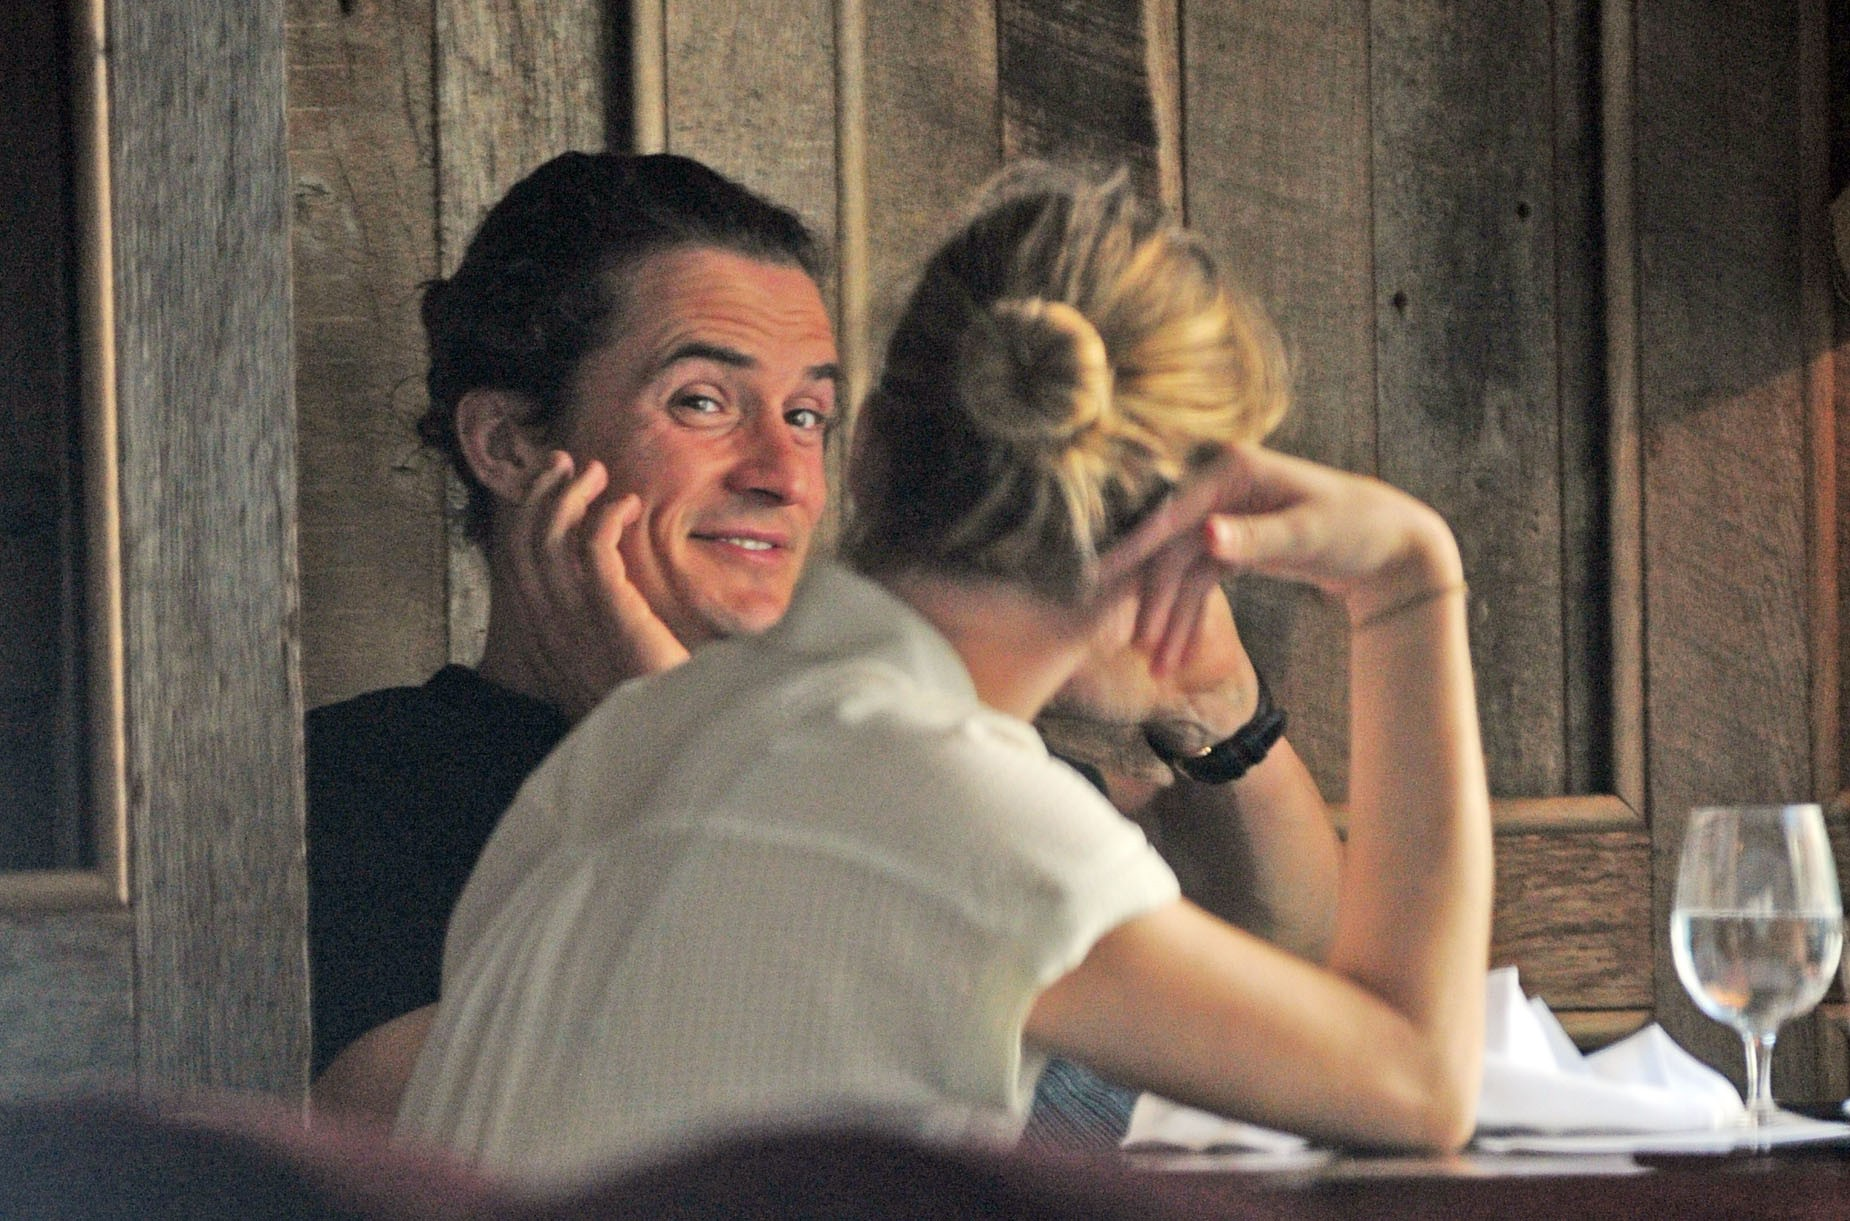 Laura Paine e Orlando Bloom (Foto: The Grosby Group)